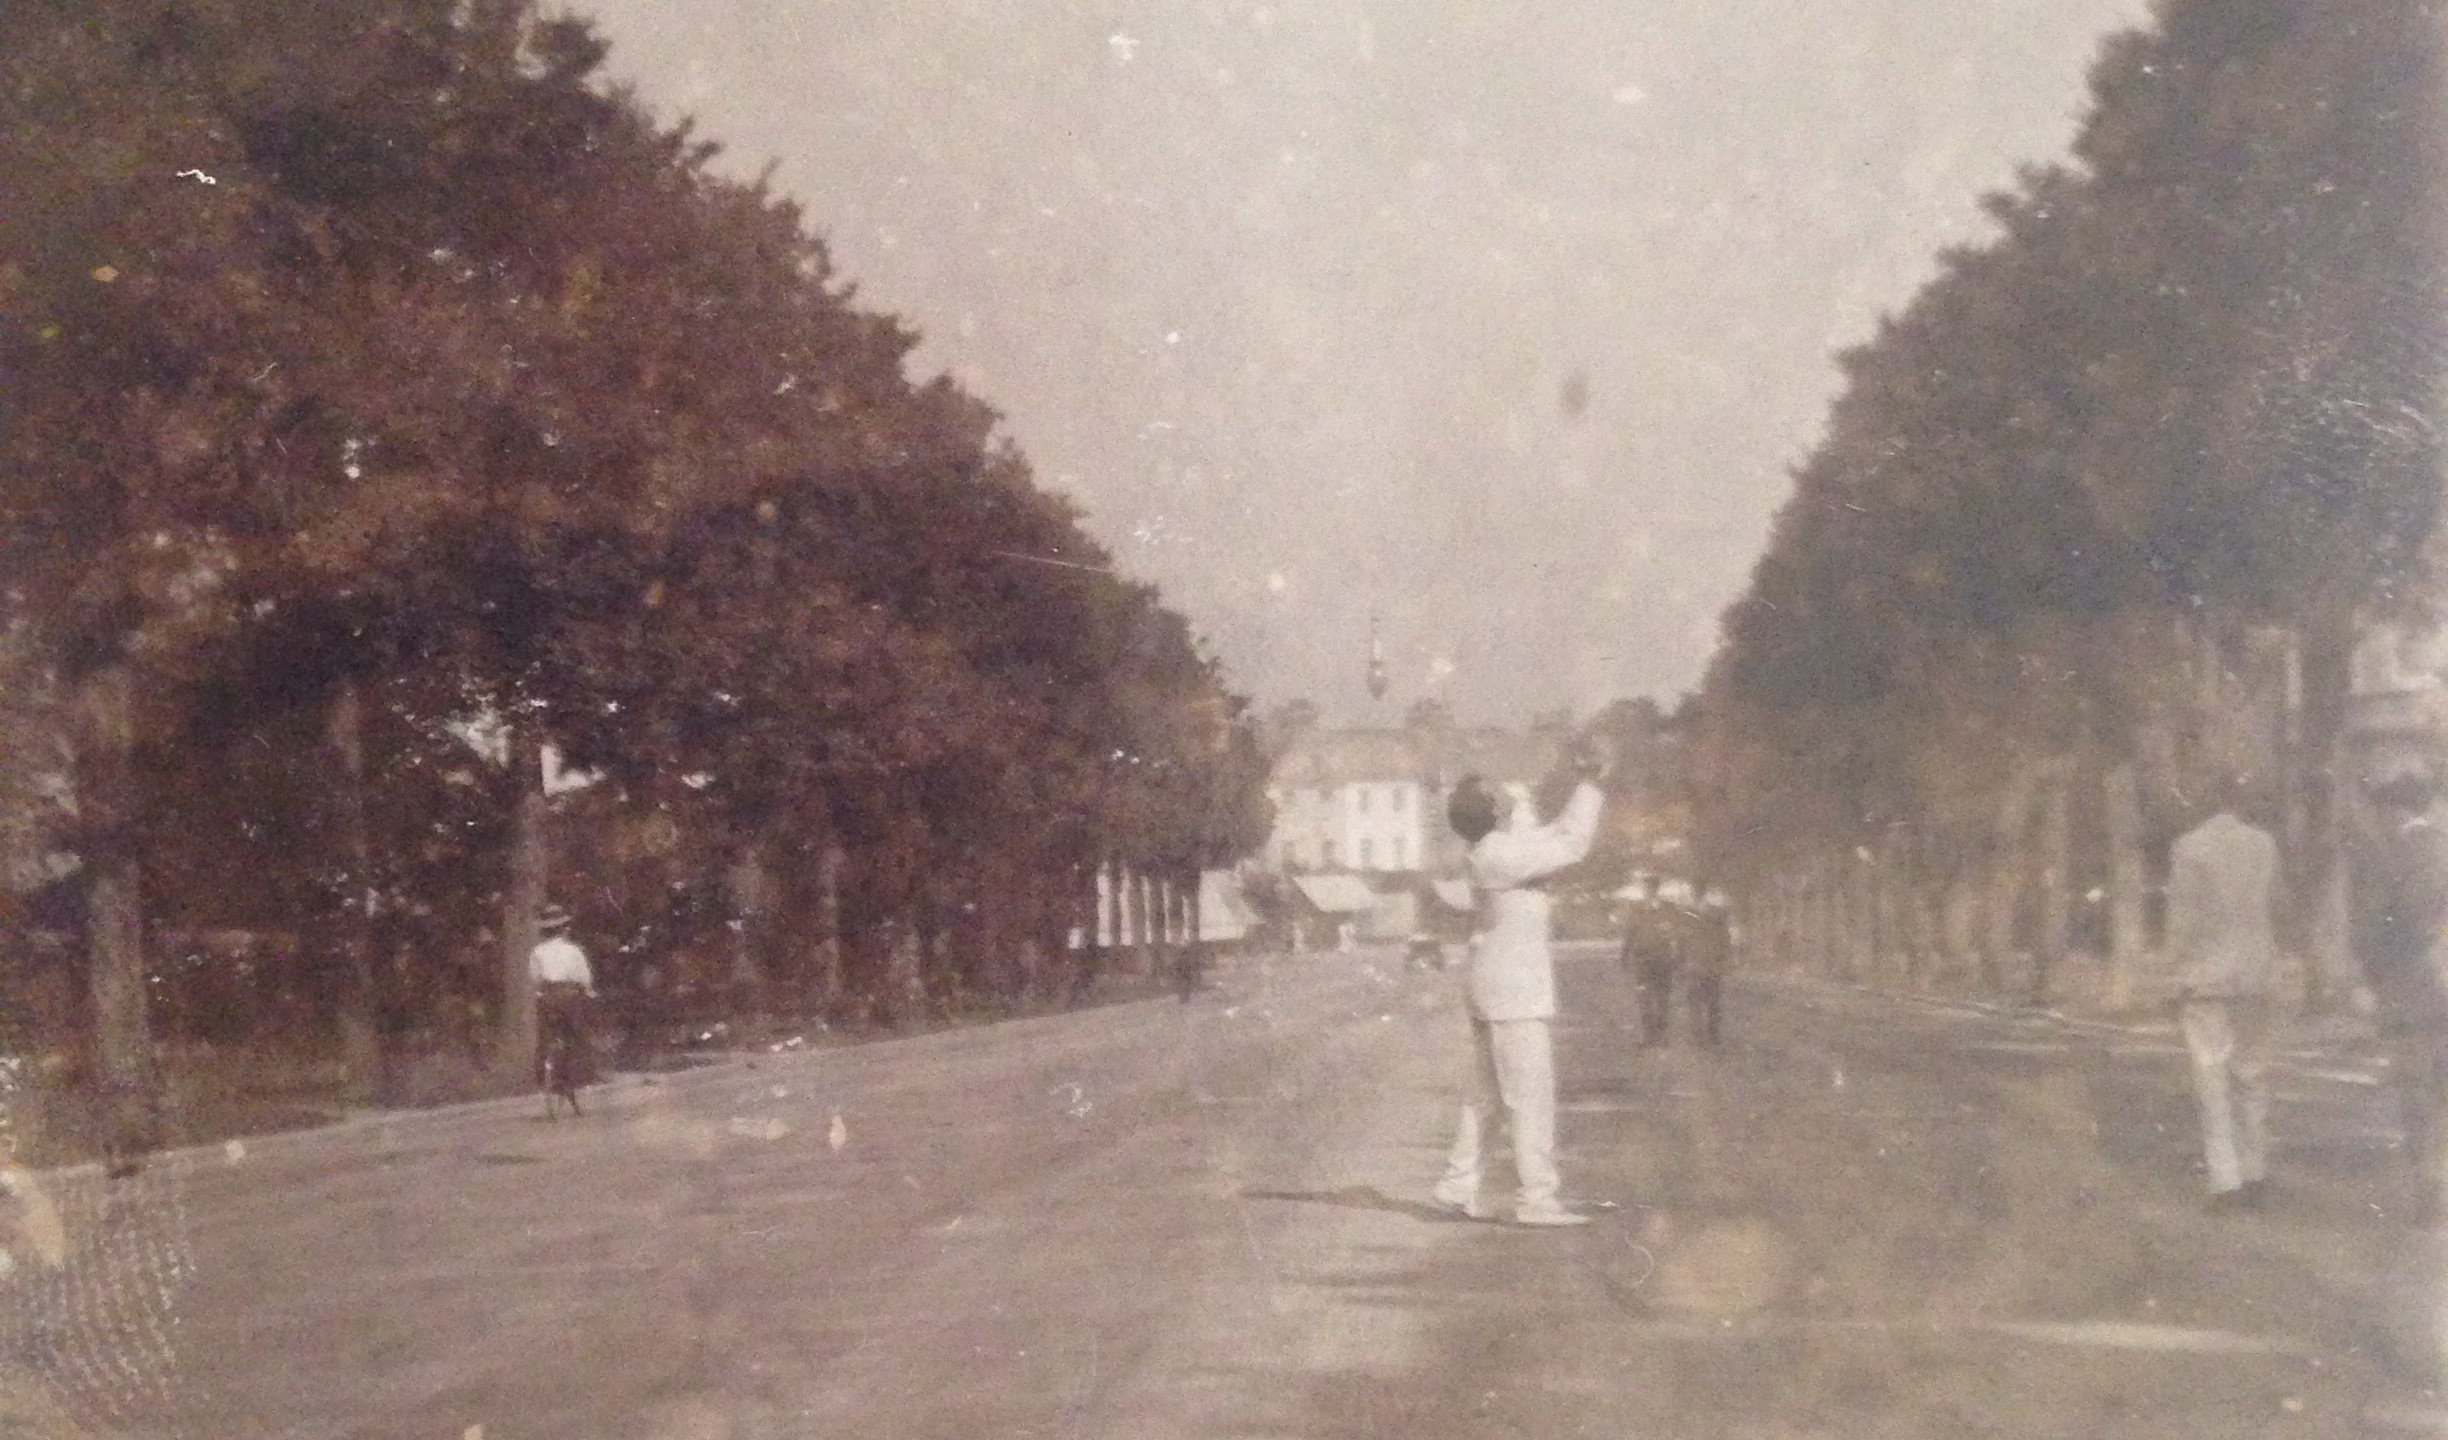 Playing catch on the streets of Eastbourne 1908